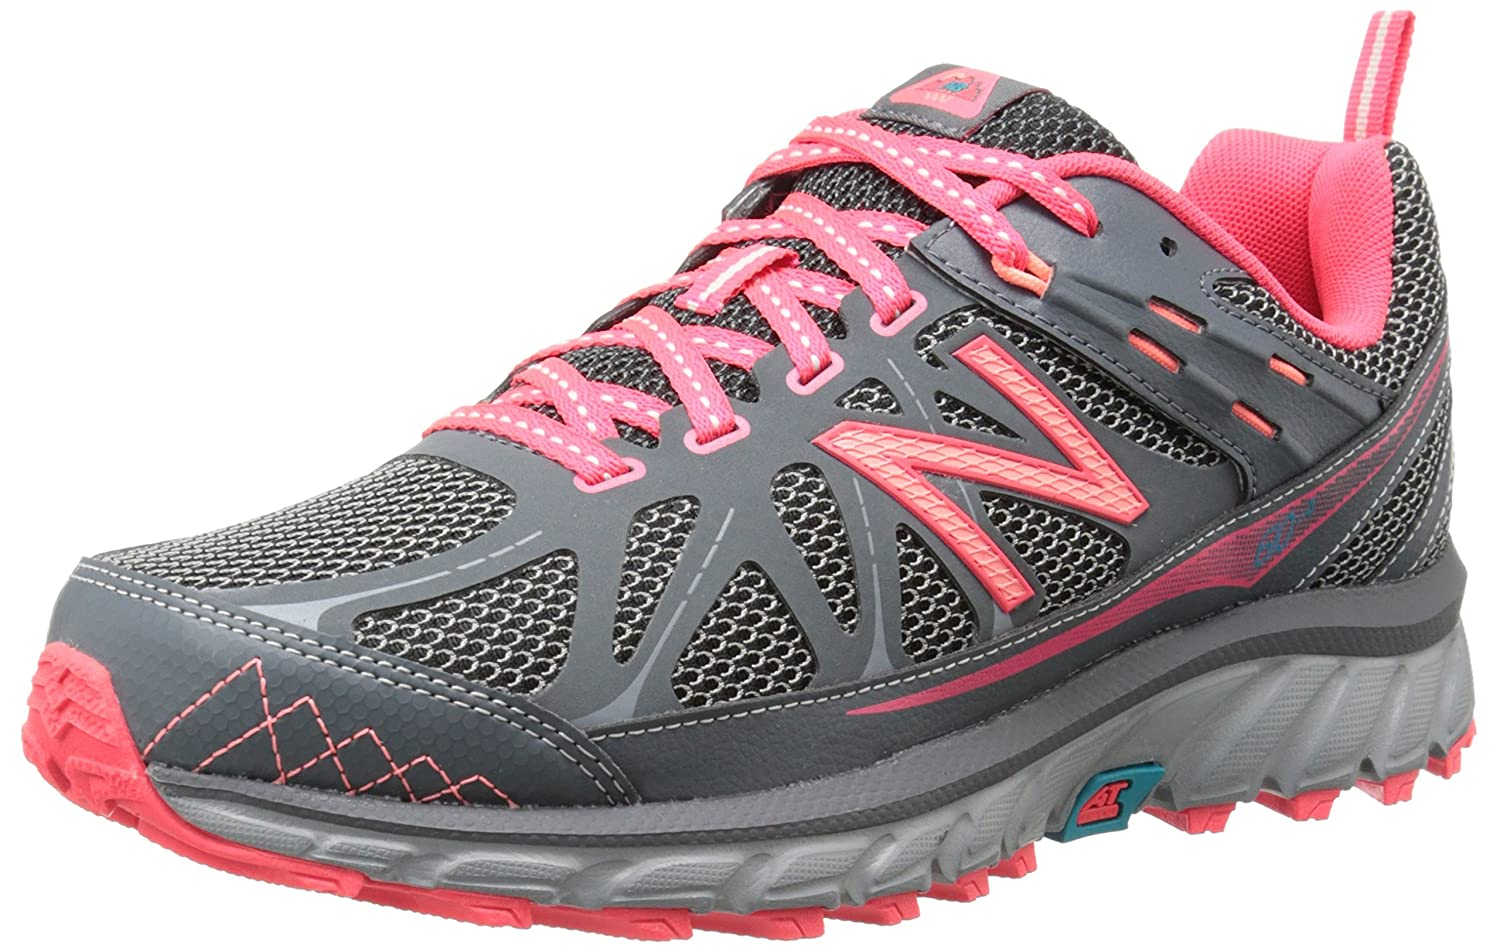 New Balance Women's WT610V4 Trail Shoe B00KJCIJT8 8 D US|Grey/Pink